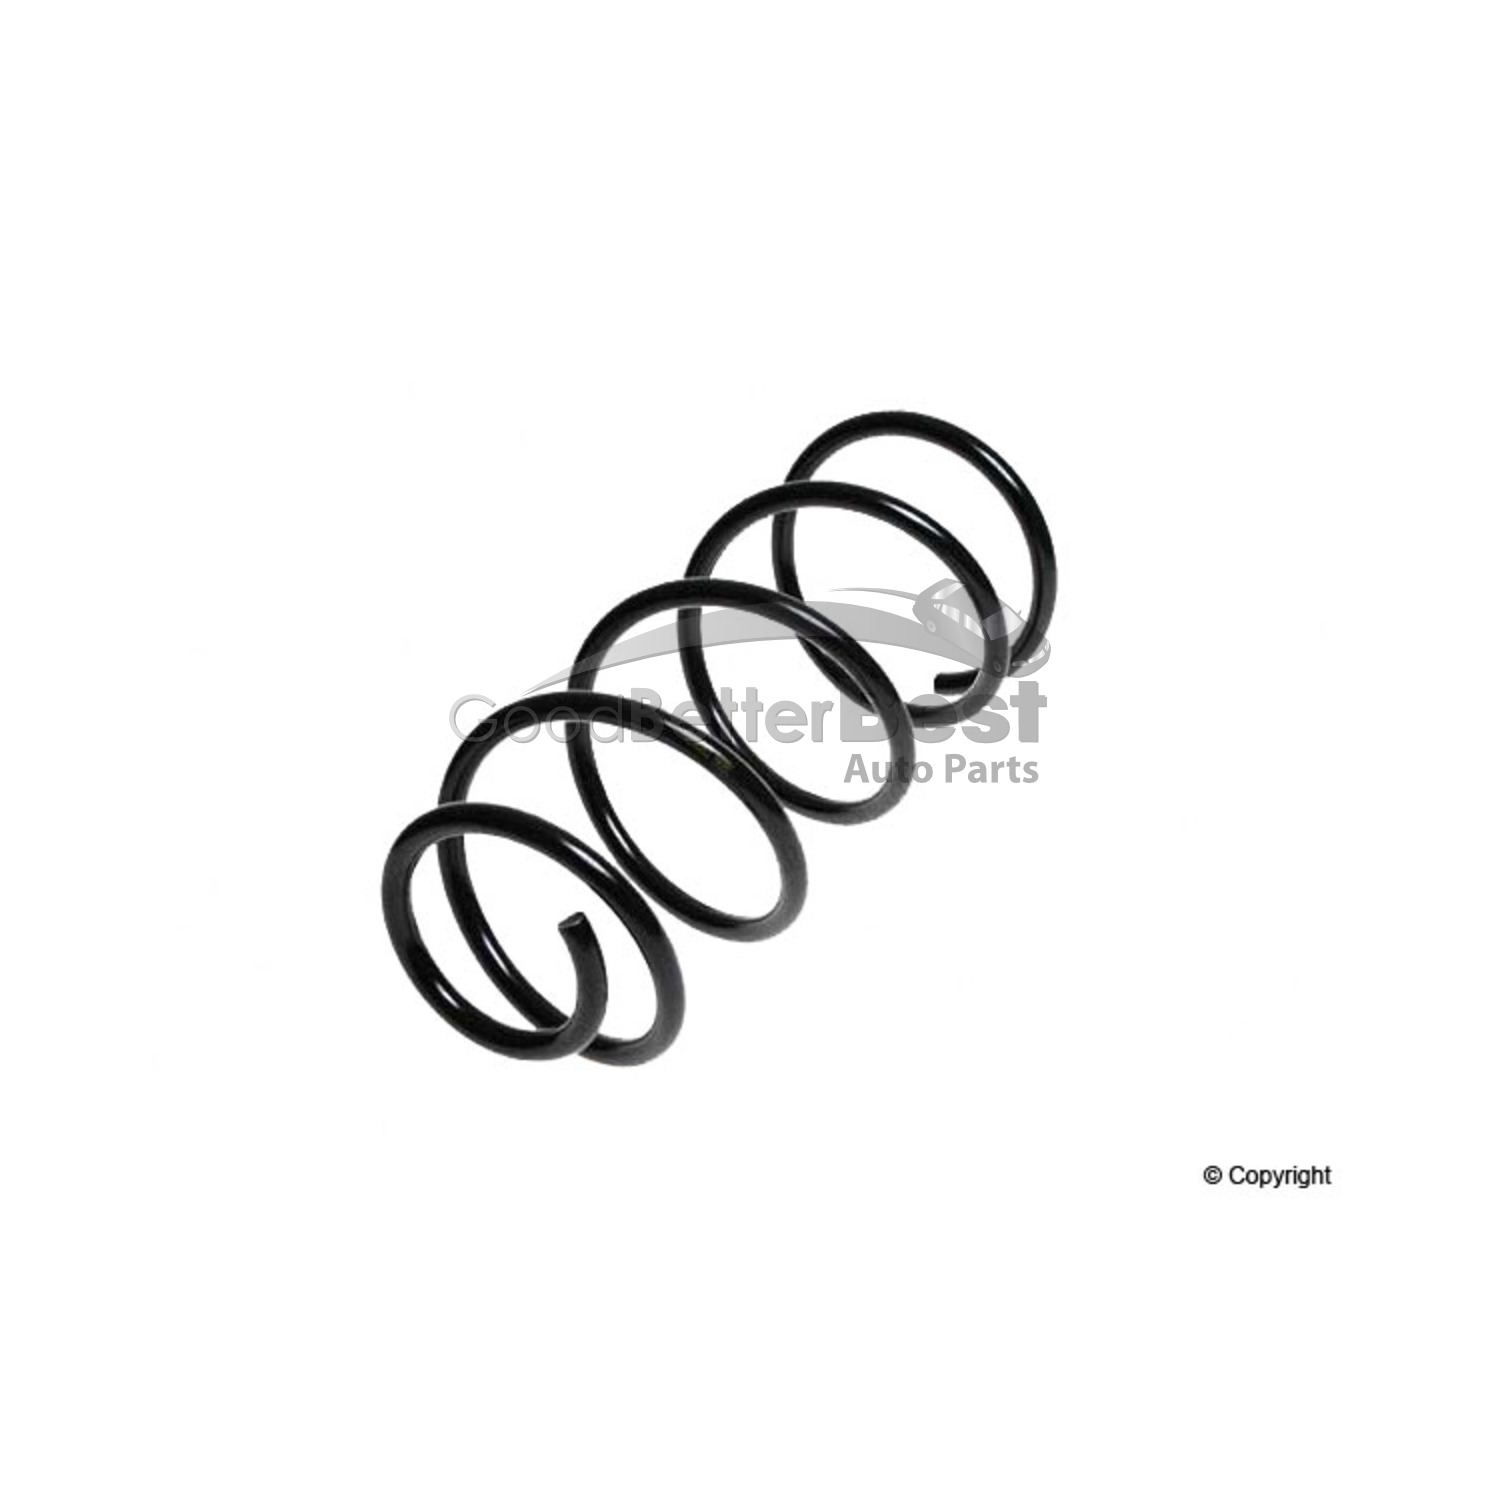 One New Lesjofors Coil Spring Front For